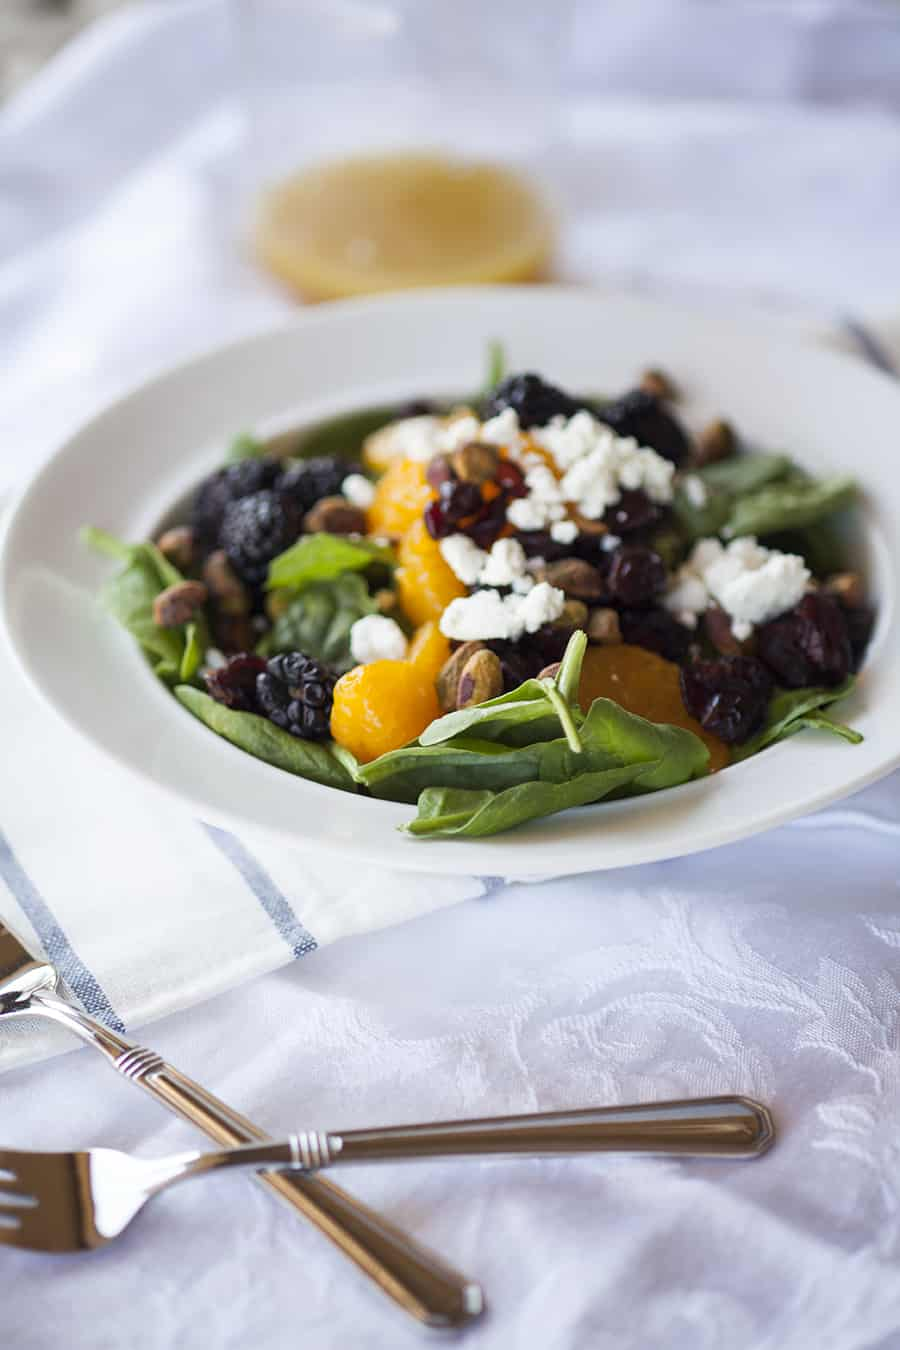 This citrus berry spinach salad is loaded with ingredients like pistachios, cranberries, goat cheese, oranges and blackberries and it's perfect for a summer salad!